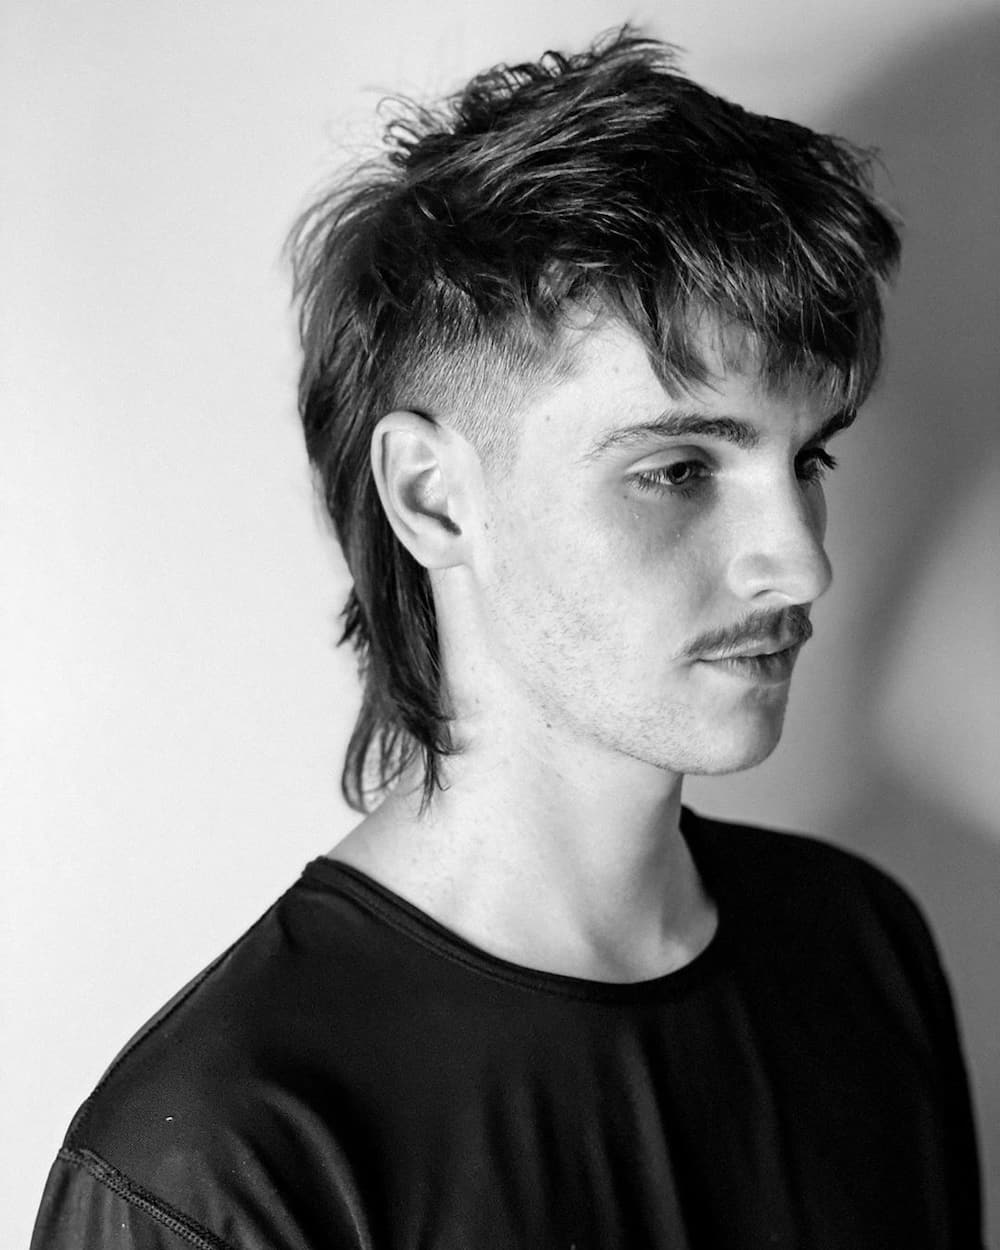 Edgar haircuts with mullet